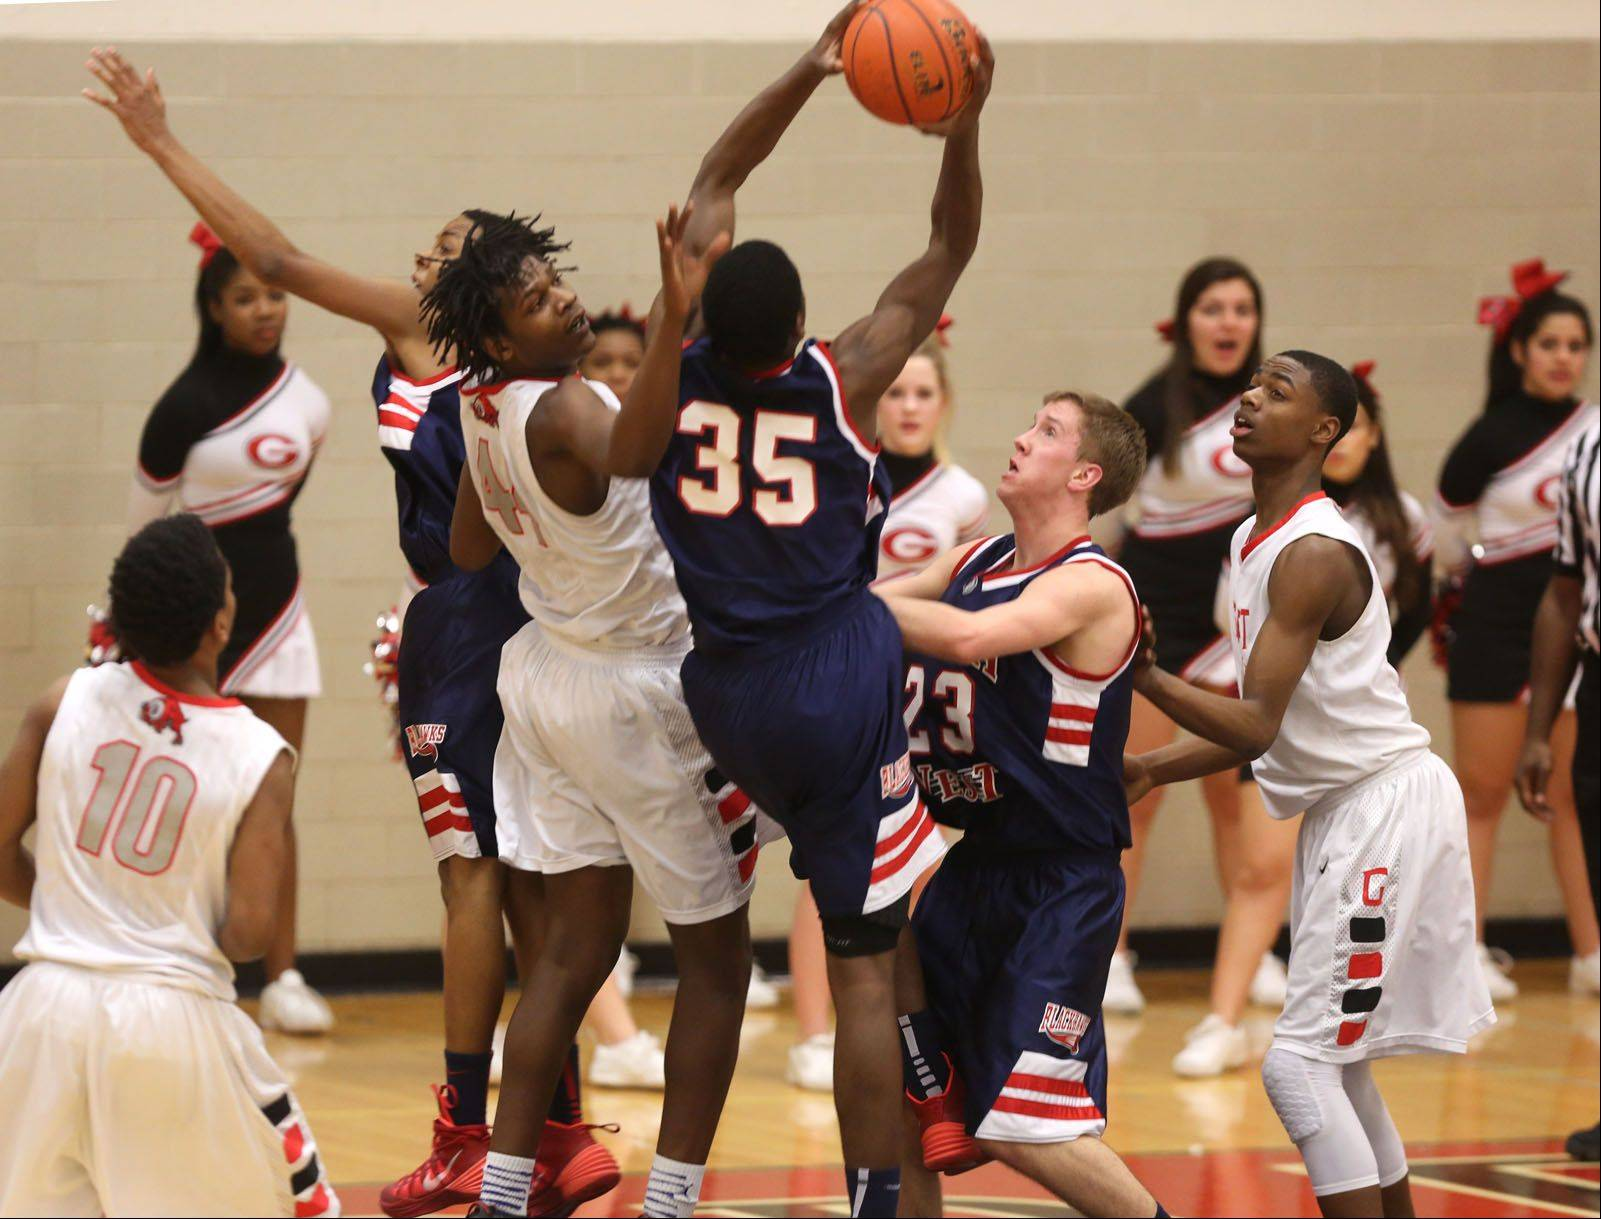 Images from the West Aurora vs. Glenbard East boys basketball game Friday, January 31, 2014 in Lombard.